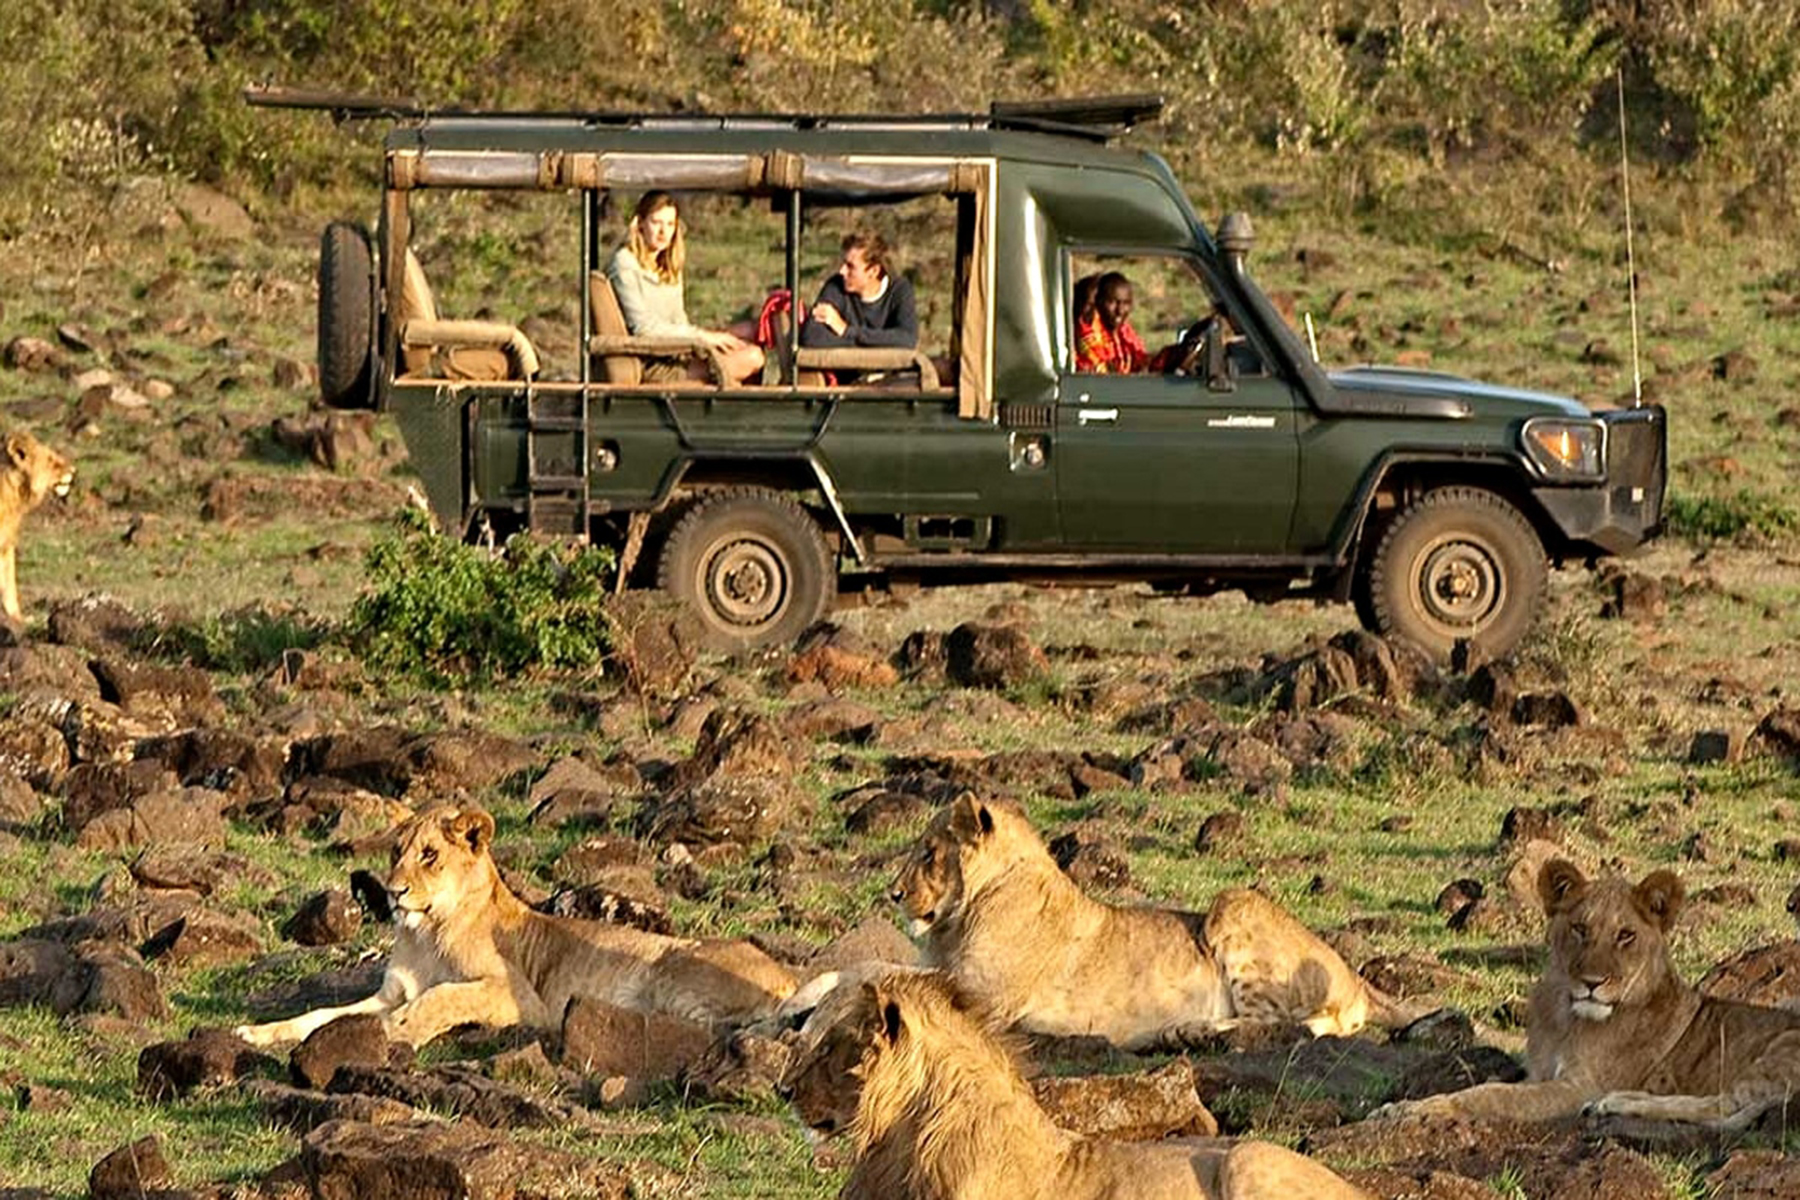 rothschild-safaris-jeep.jpg